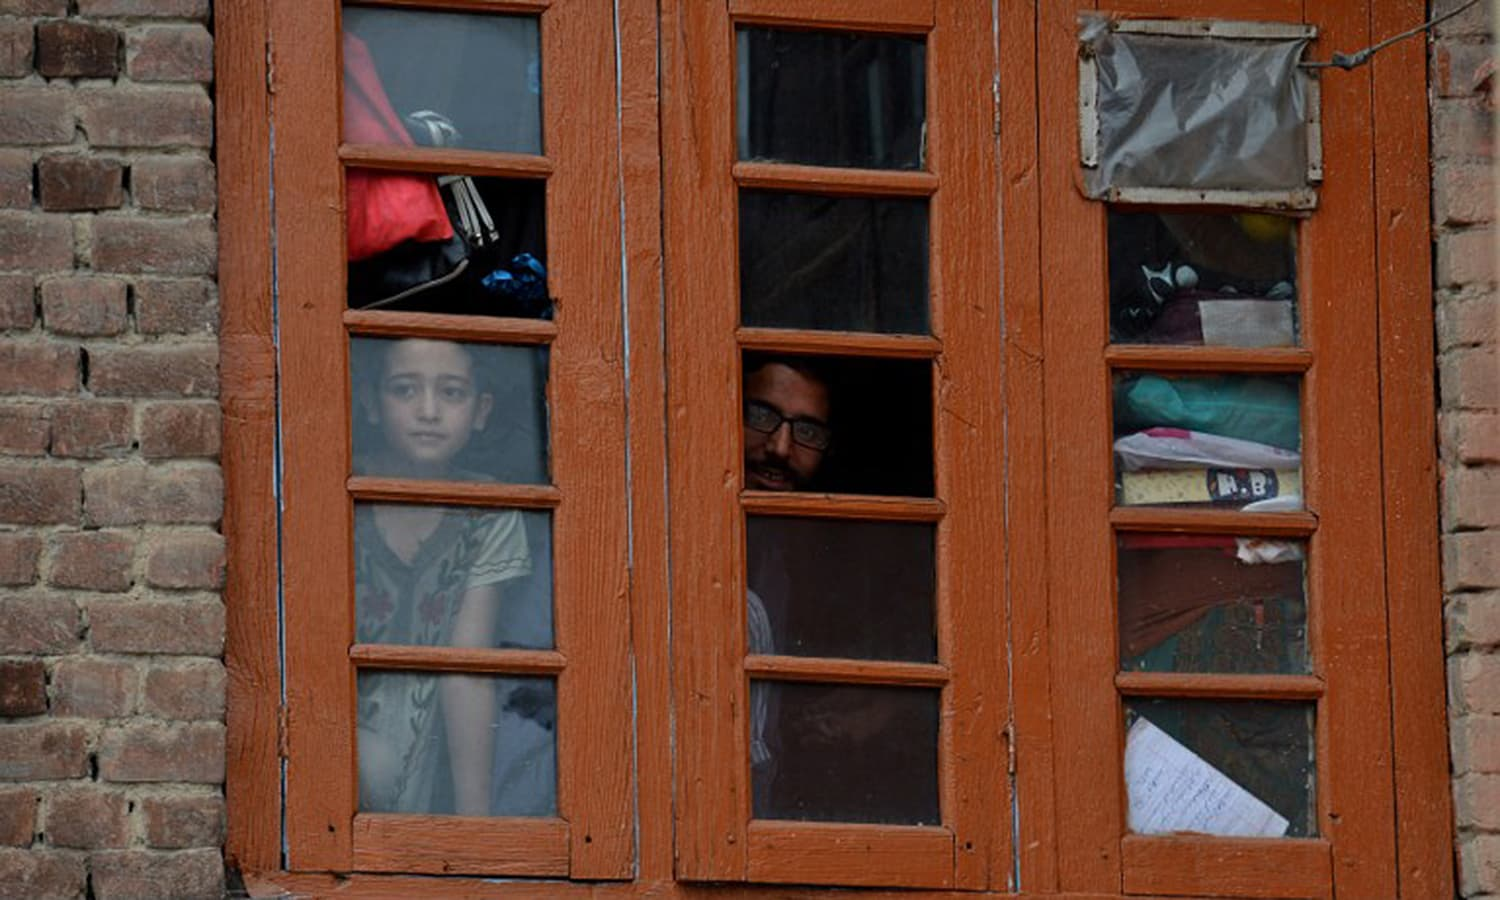 A Kashmiri girl looks out the window of her home. —AFP